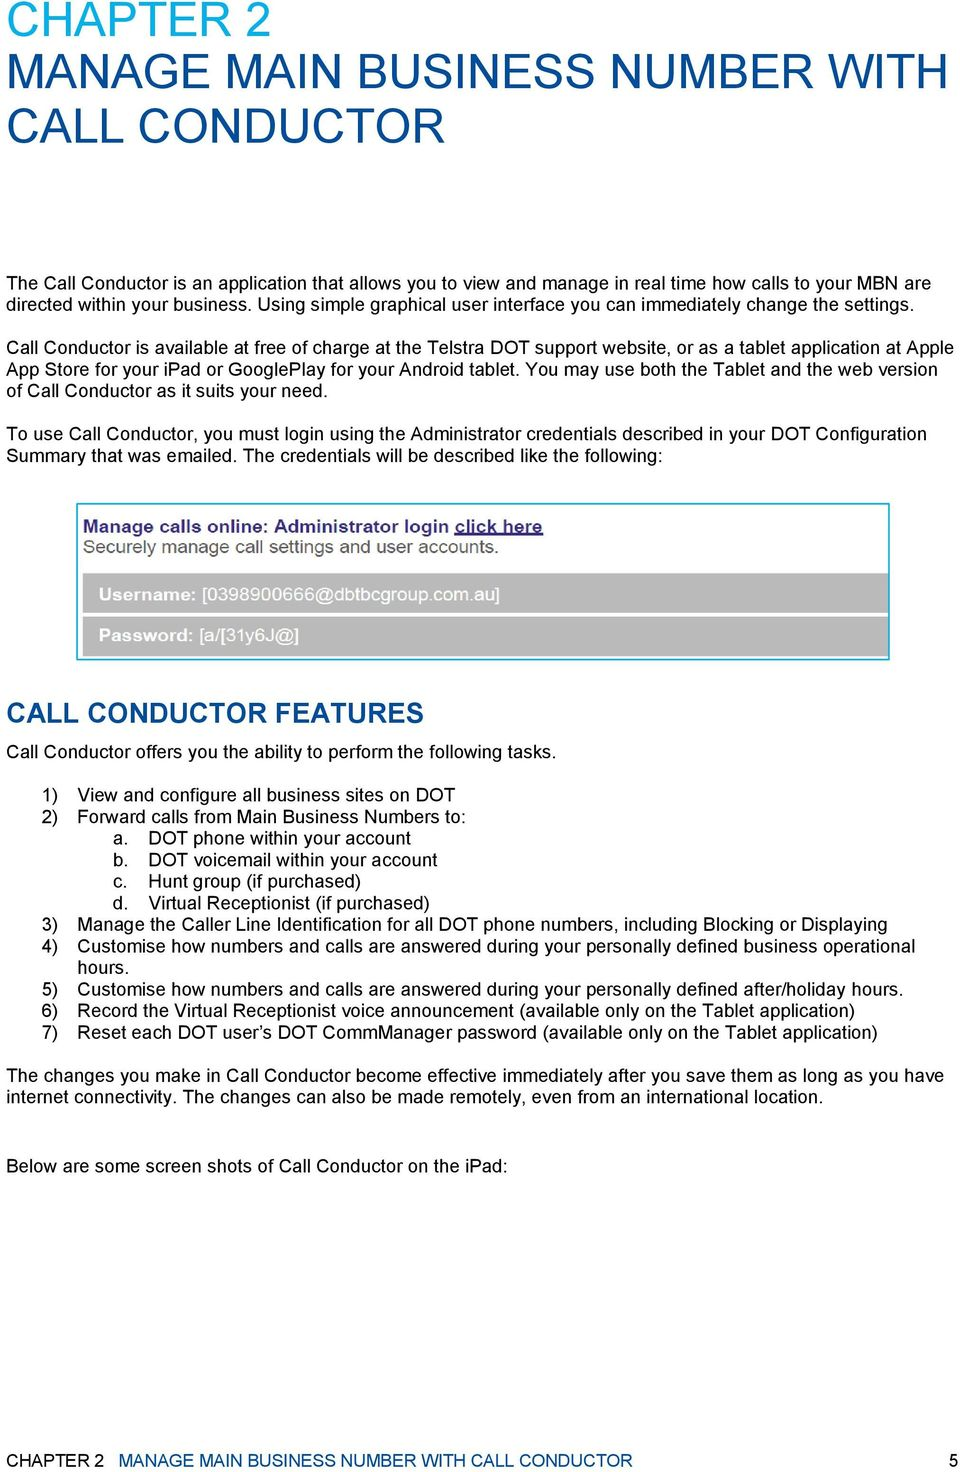 MANAGE YOUR MAIN BUSINESS NUMBER WITH CALL CONDUCTOR - PDF